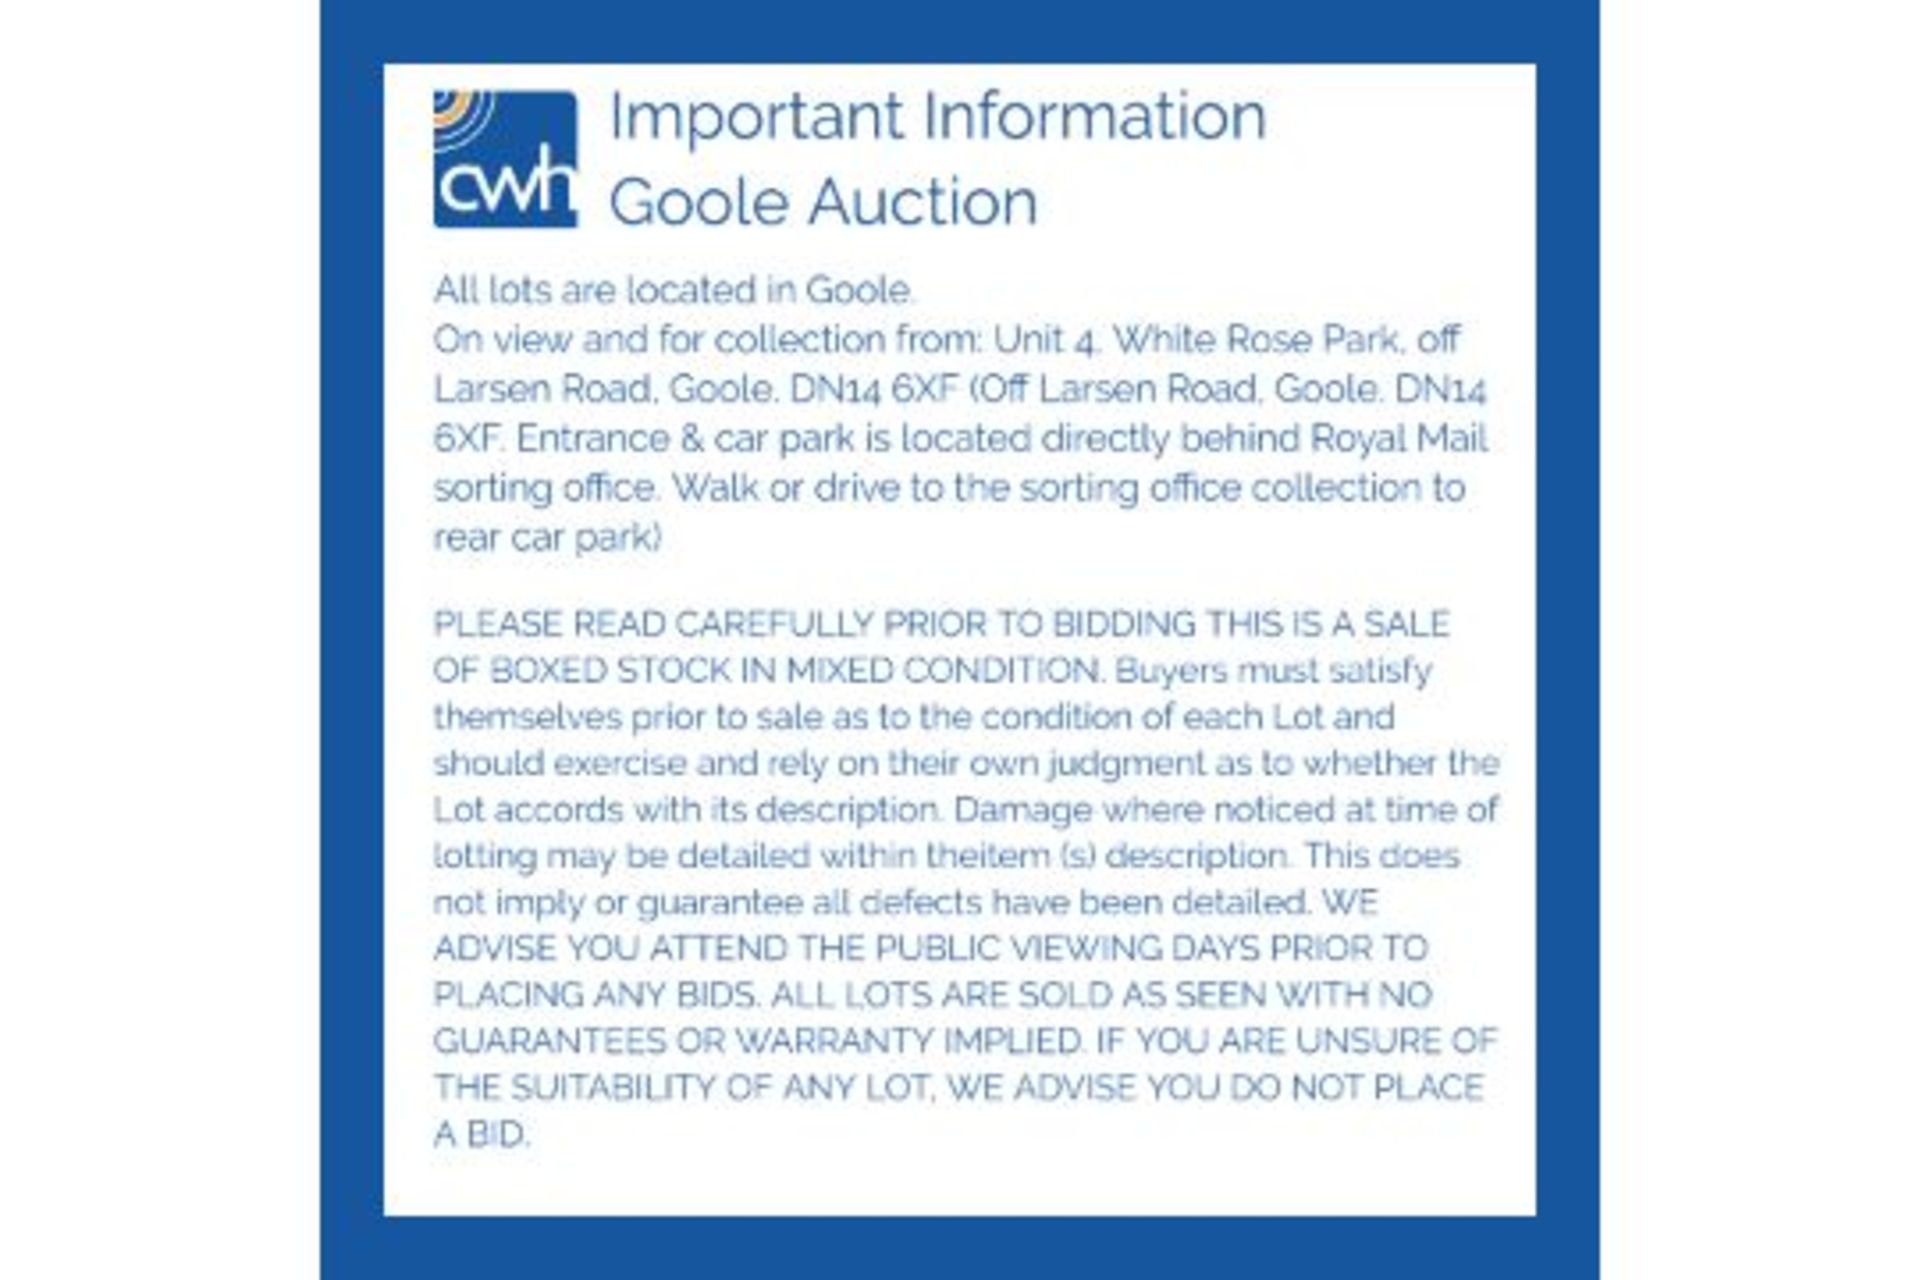 Lot 1 - PLEASE READ CAREFULLY PRIOR TO BIDDING.